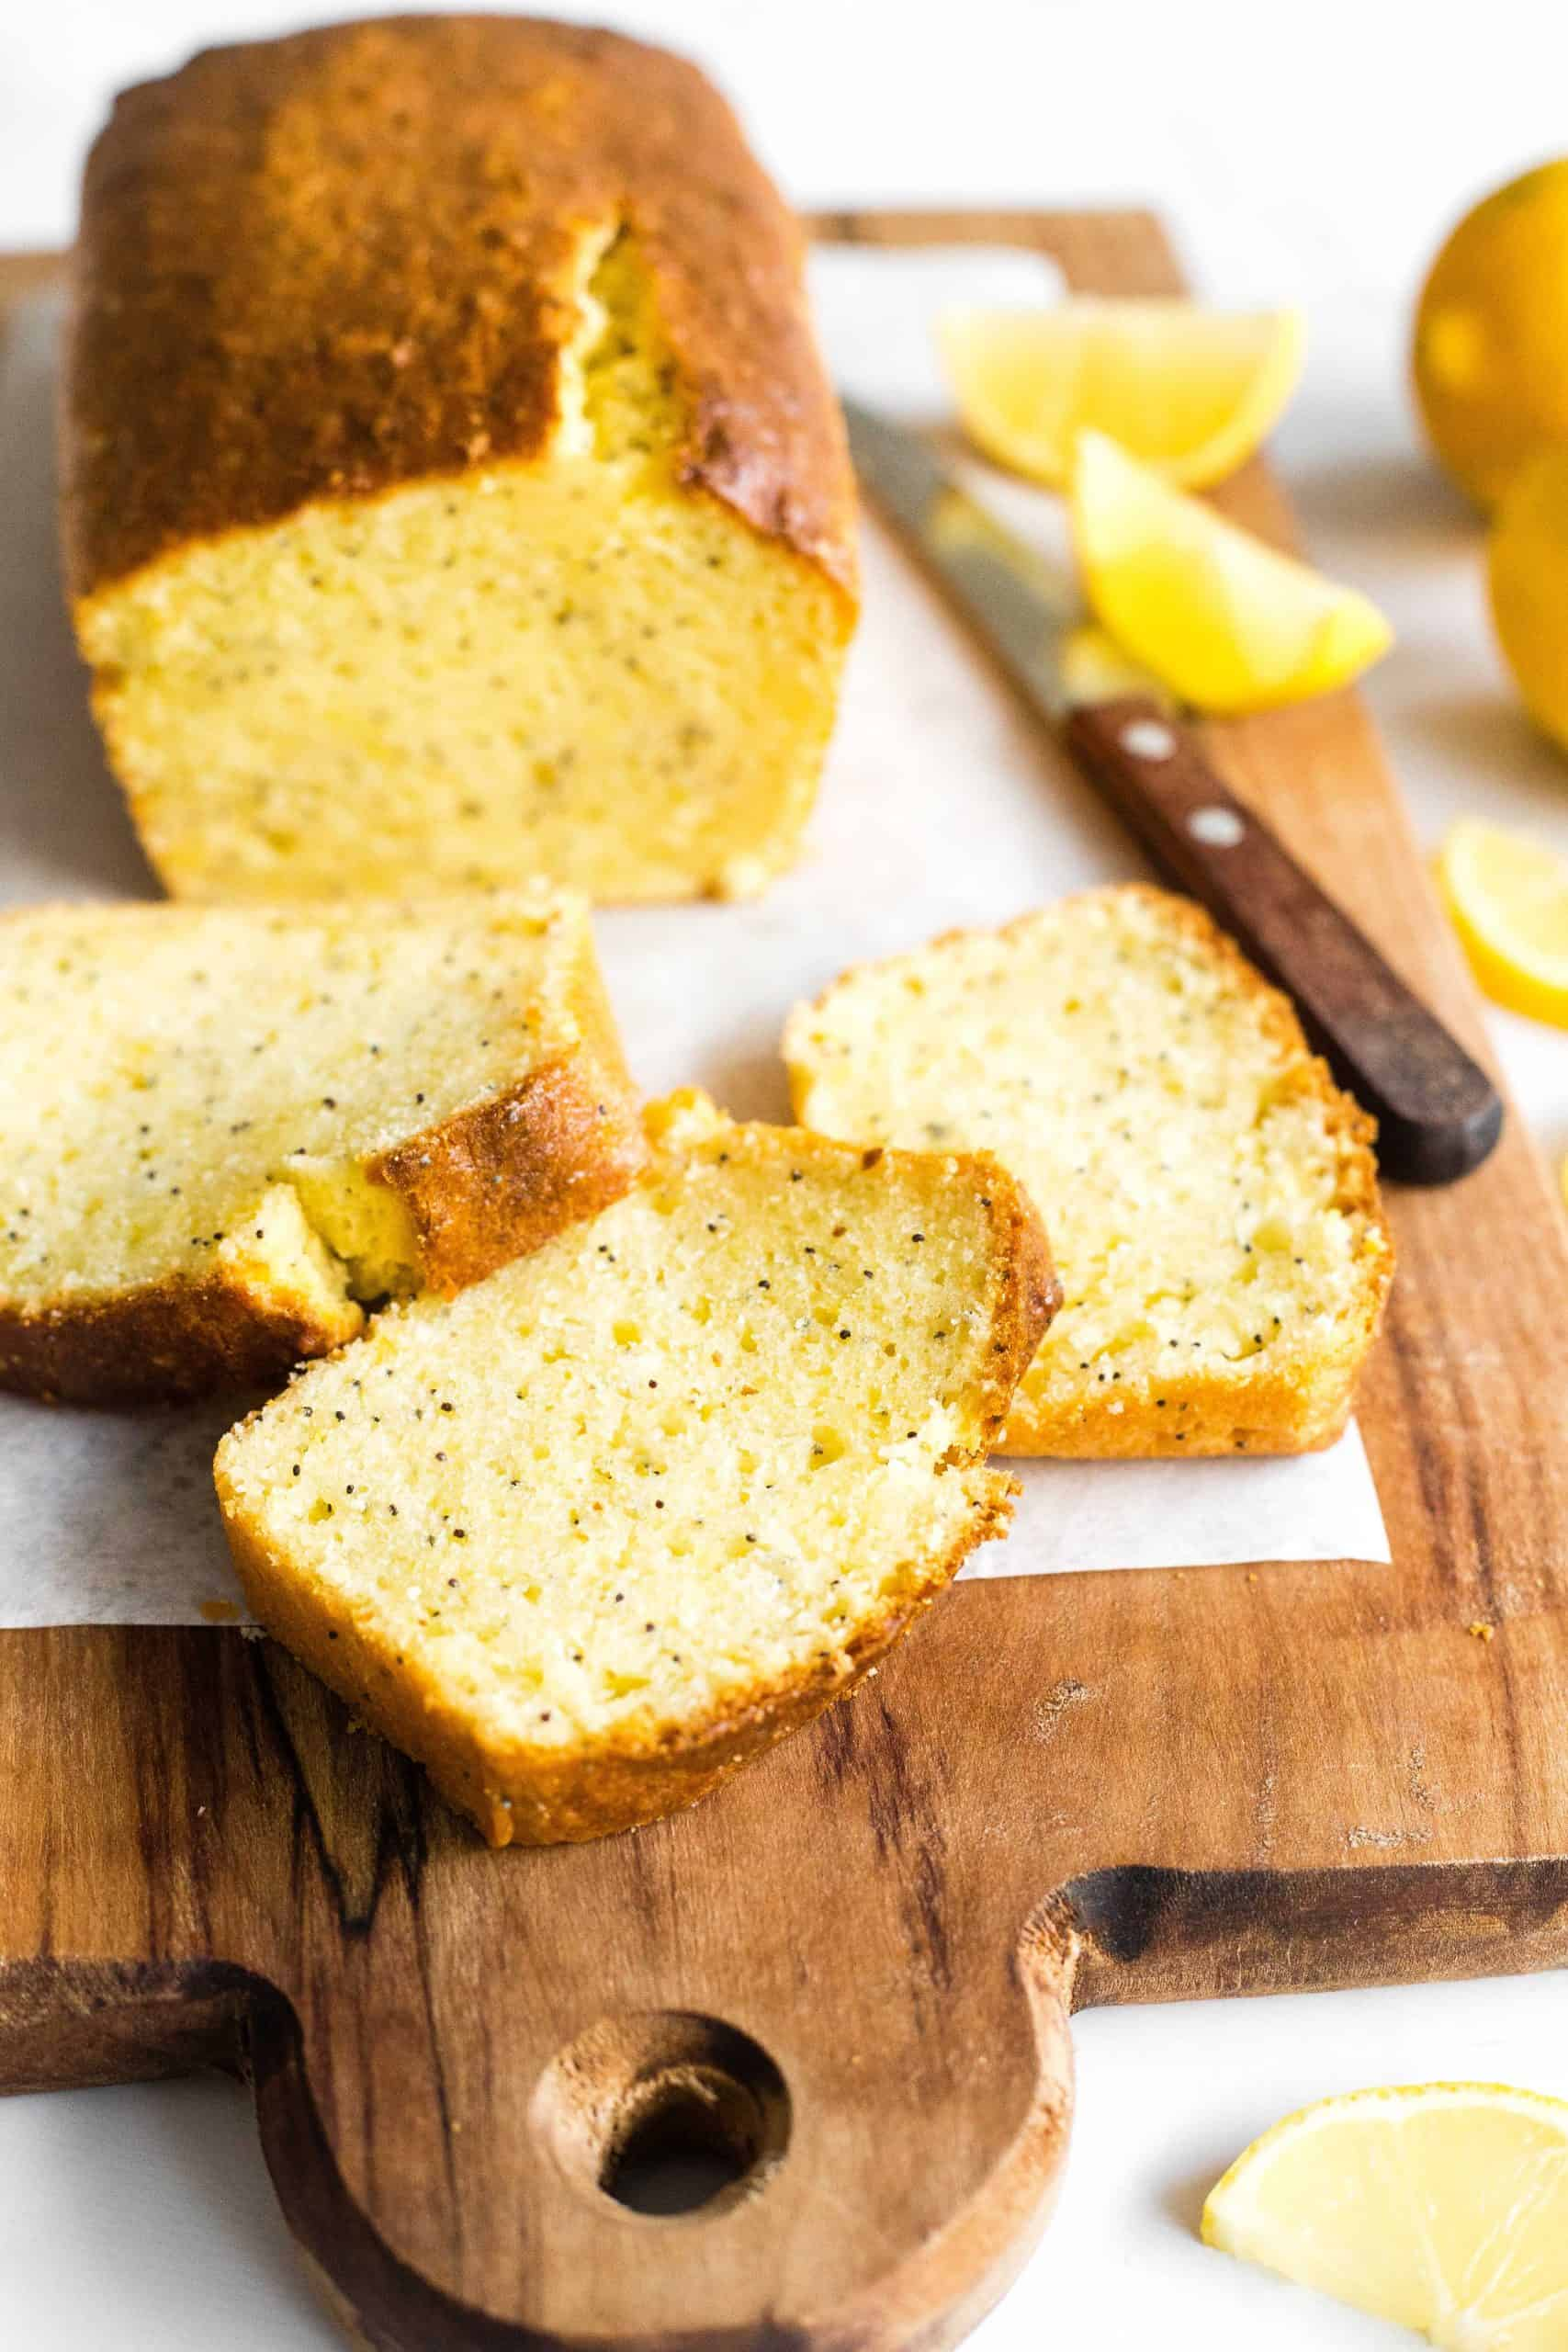 Slices of gluten-free lemon poppy seed cake on a parchment-lined wooden board.